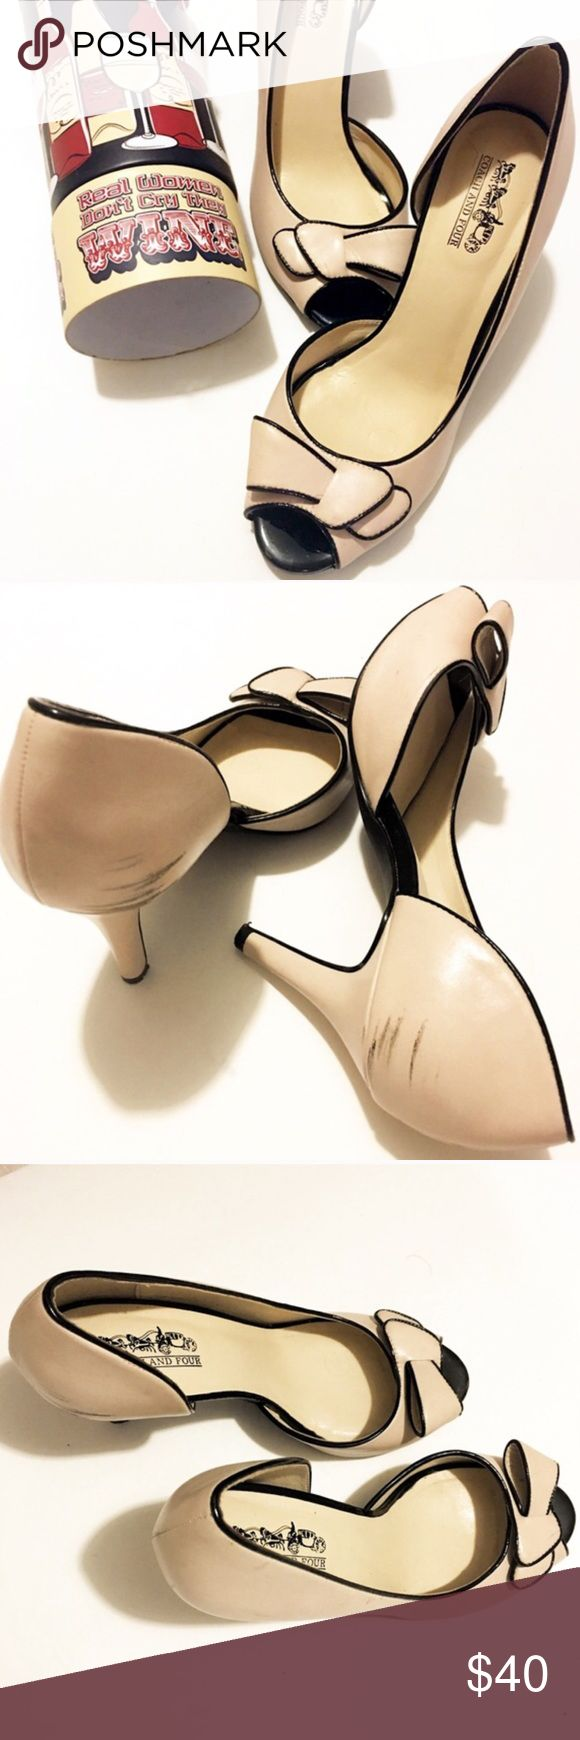 Coach and Four two toned bow heels Coach and Four two toned nude heels with black piping and darling now over toe. So chic and girly. Please note scuff marks on inner side of heels. Can probably be buffed out but I haven't tried. These would be a cute neutral pump for your Holiday Dress! Coach and Four Shoes Heels